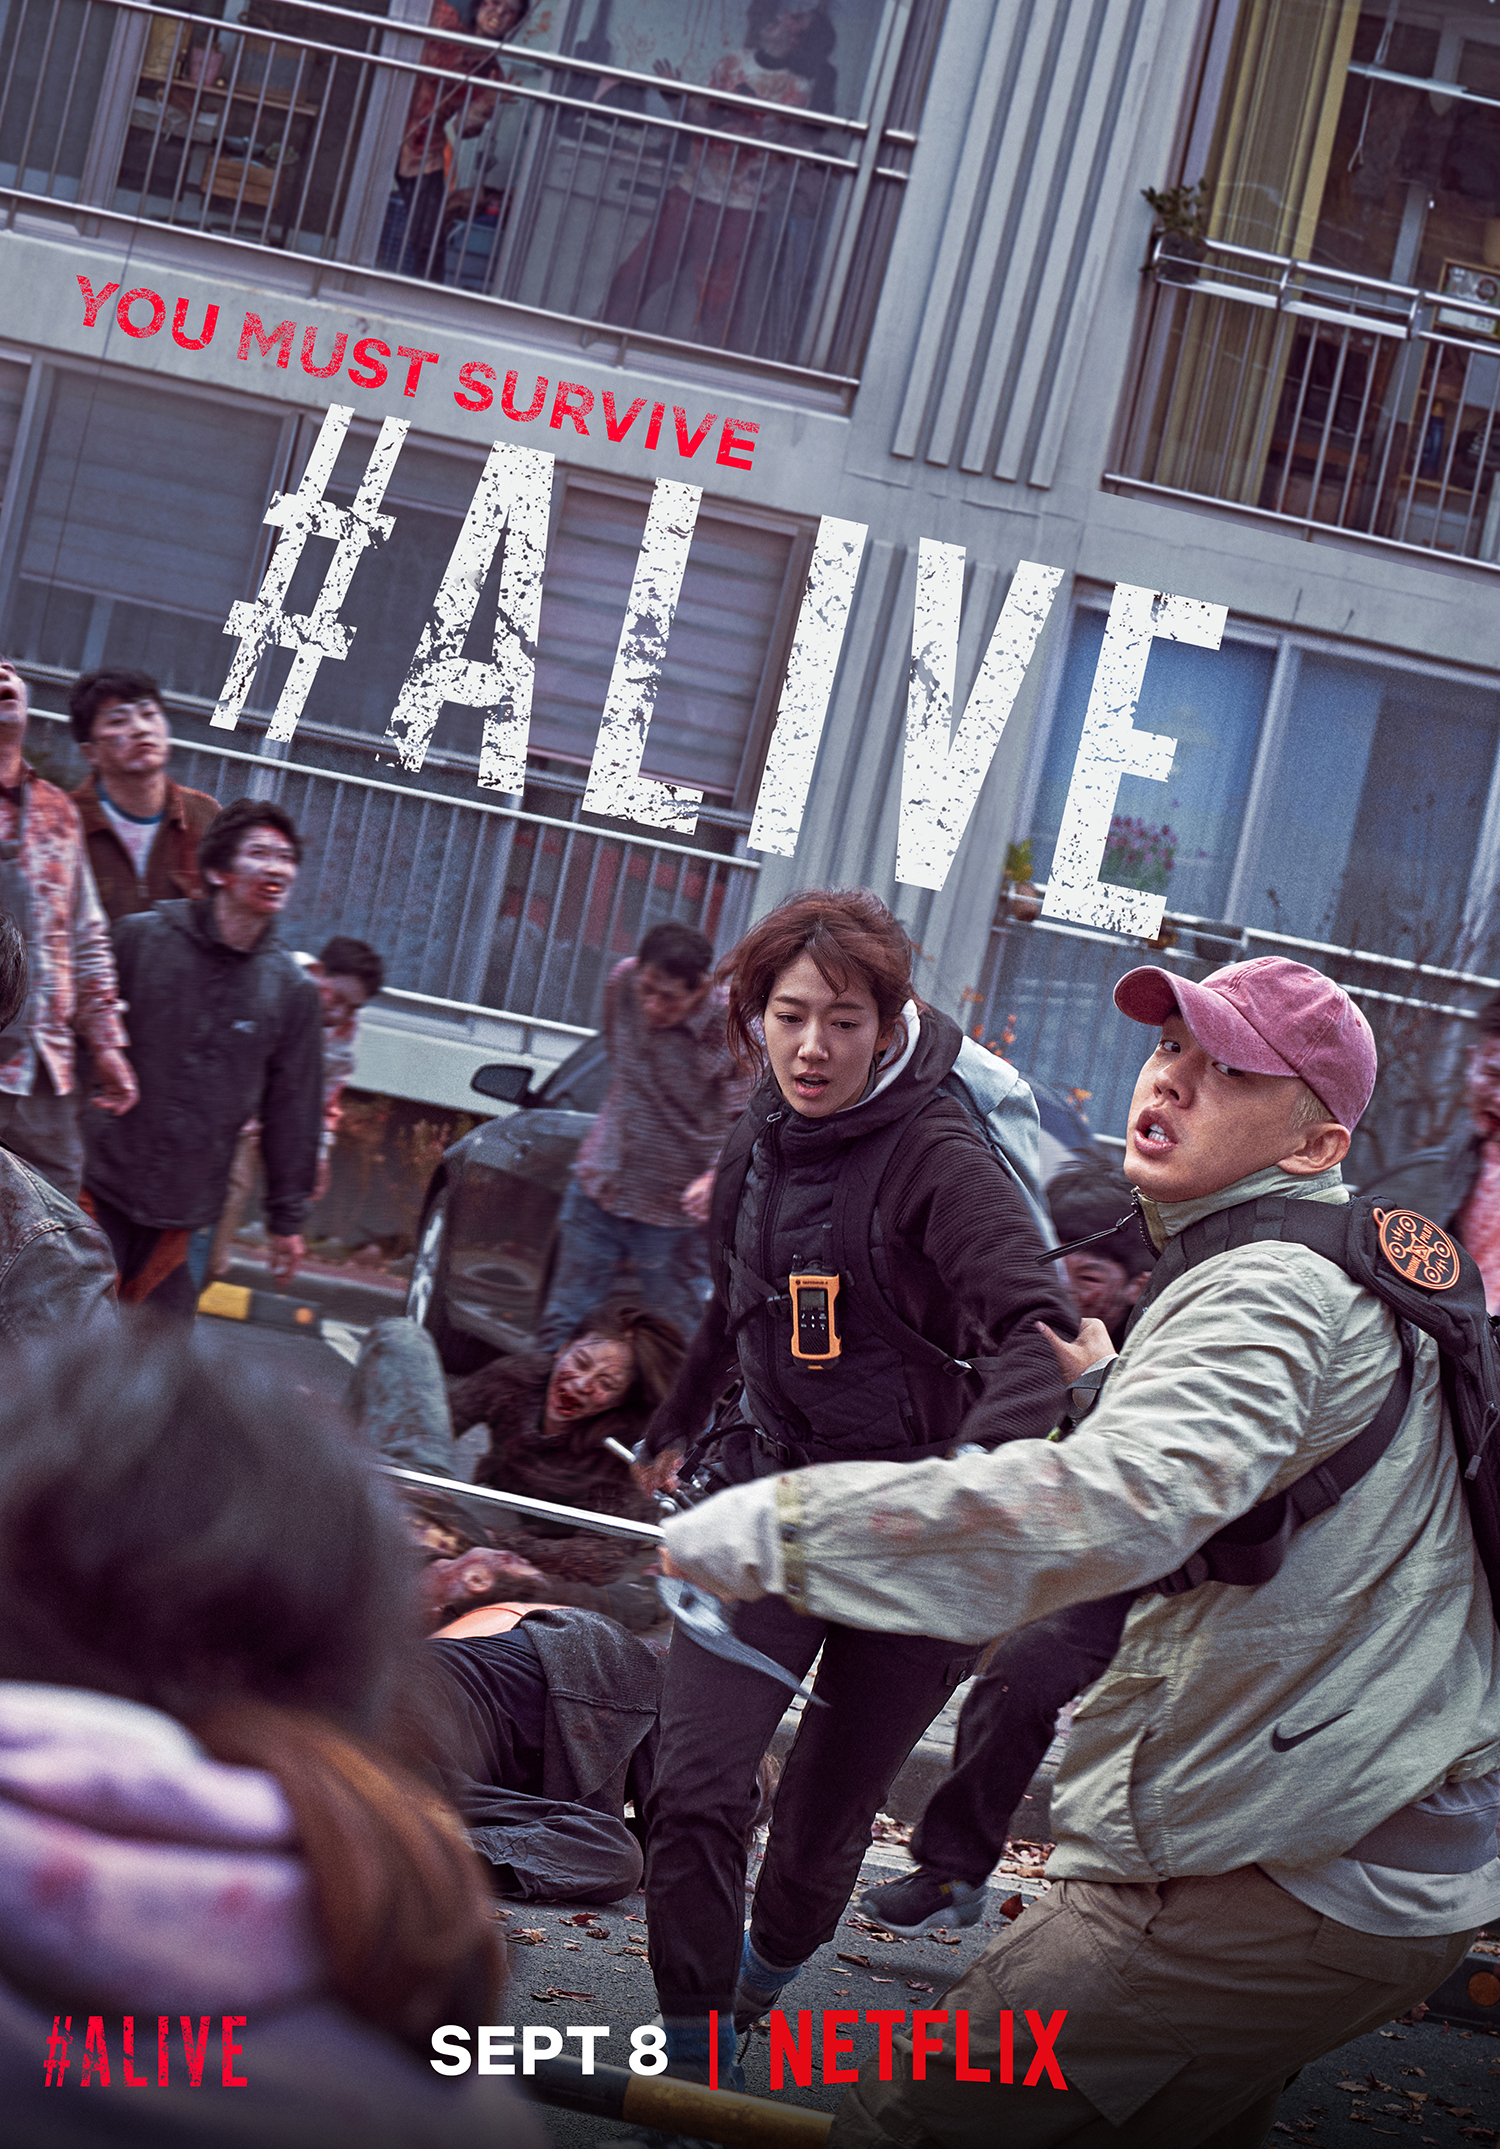 #alive, Starring Yoo Ah-in and Park Shin-hye, Confirmed for September 8 Release on Netflix - Image 1